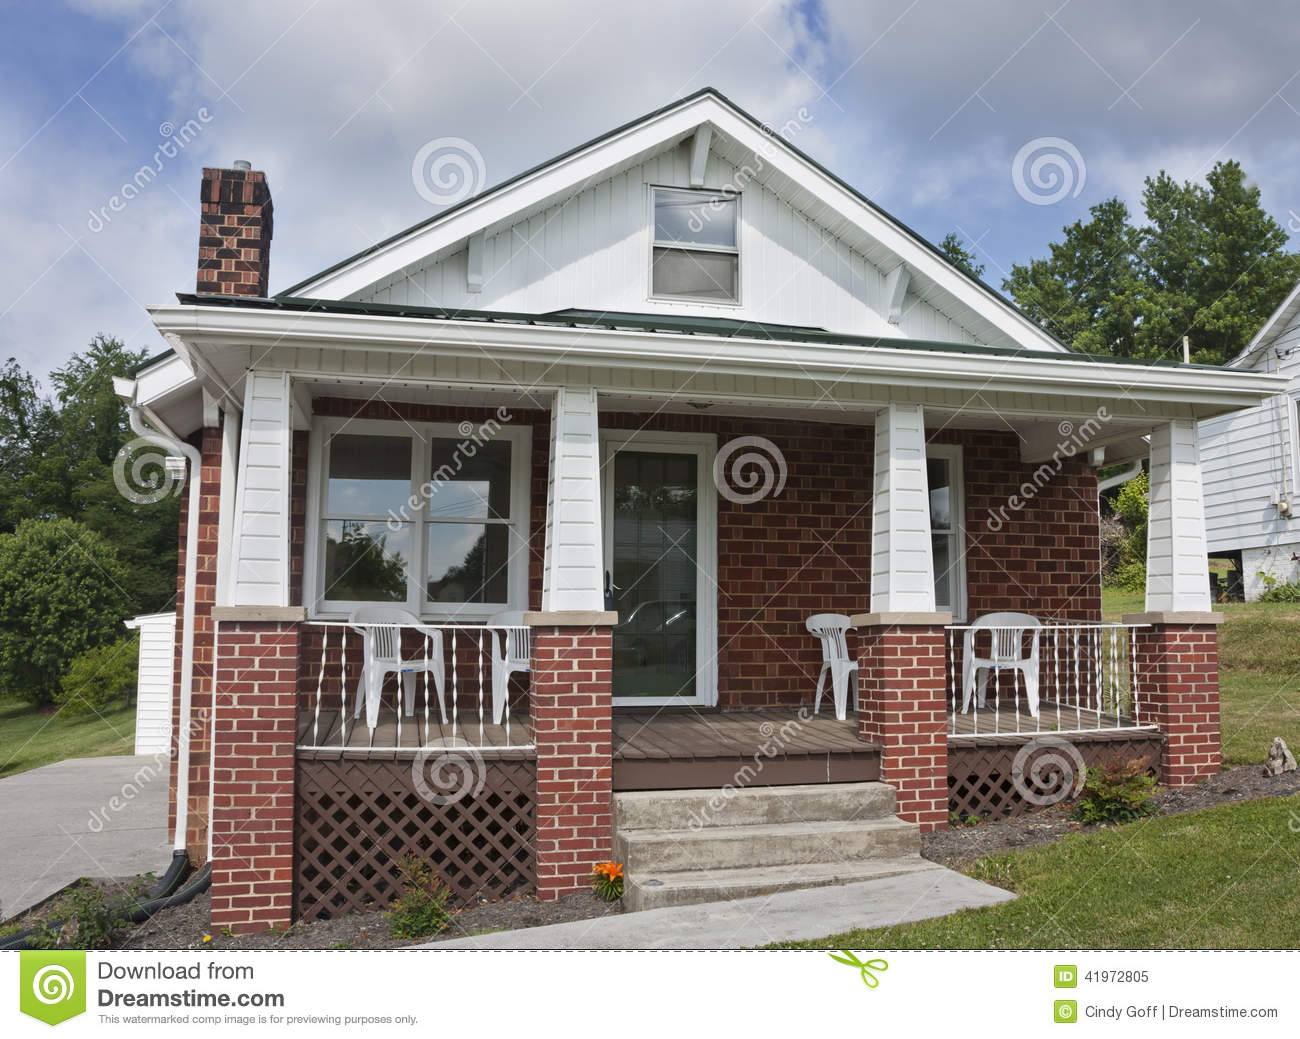 Brick House With Porch Stock Image Image Of Structure